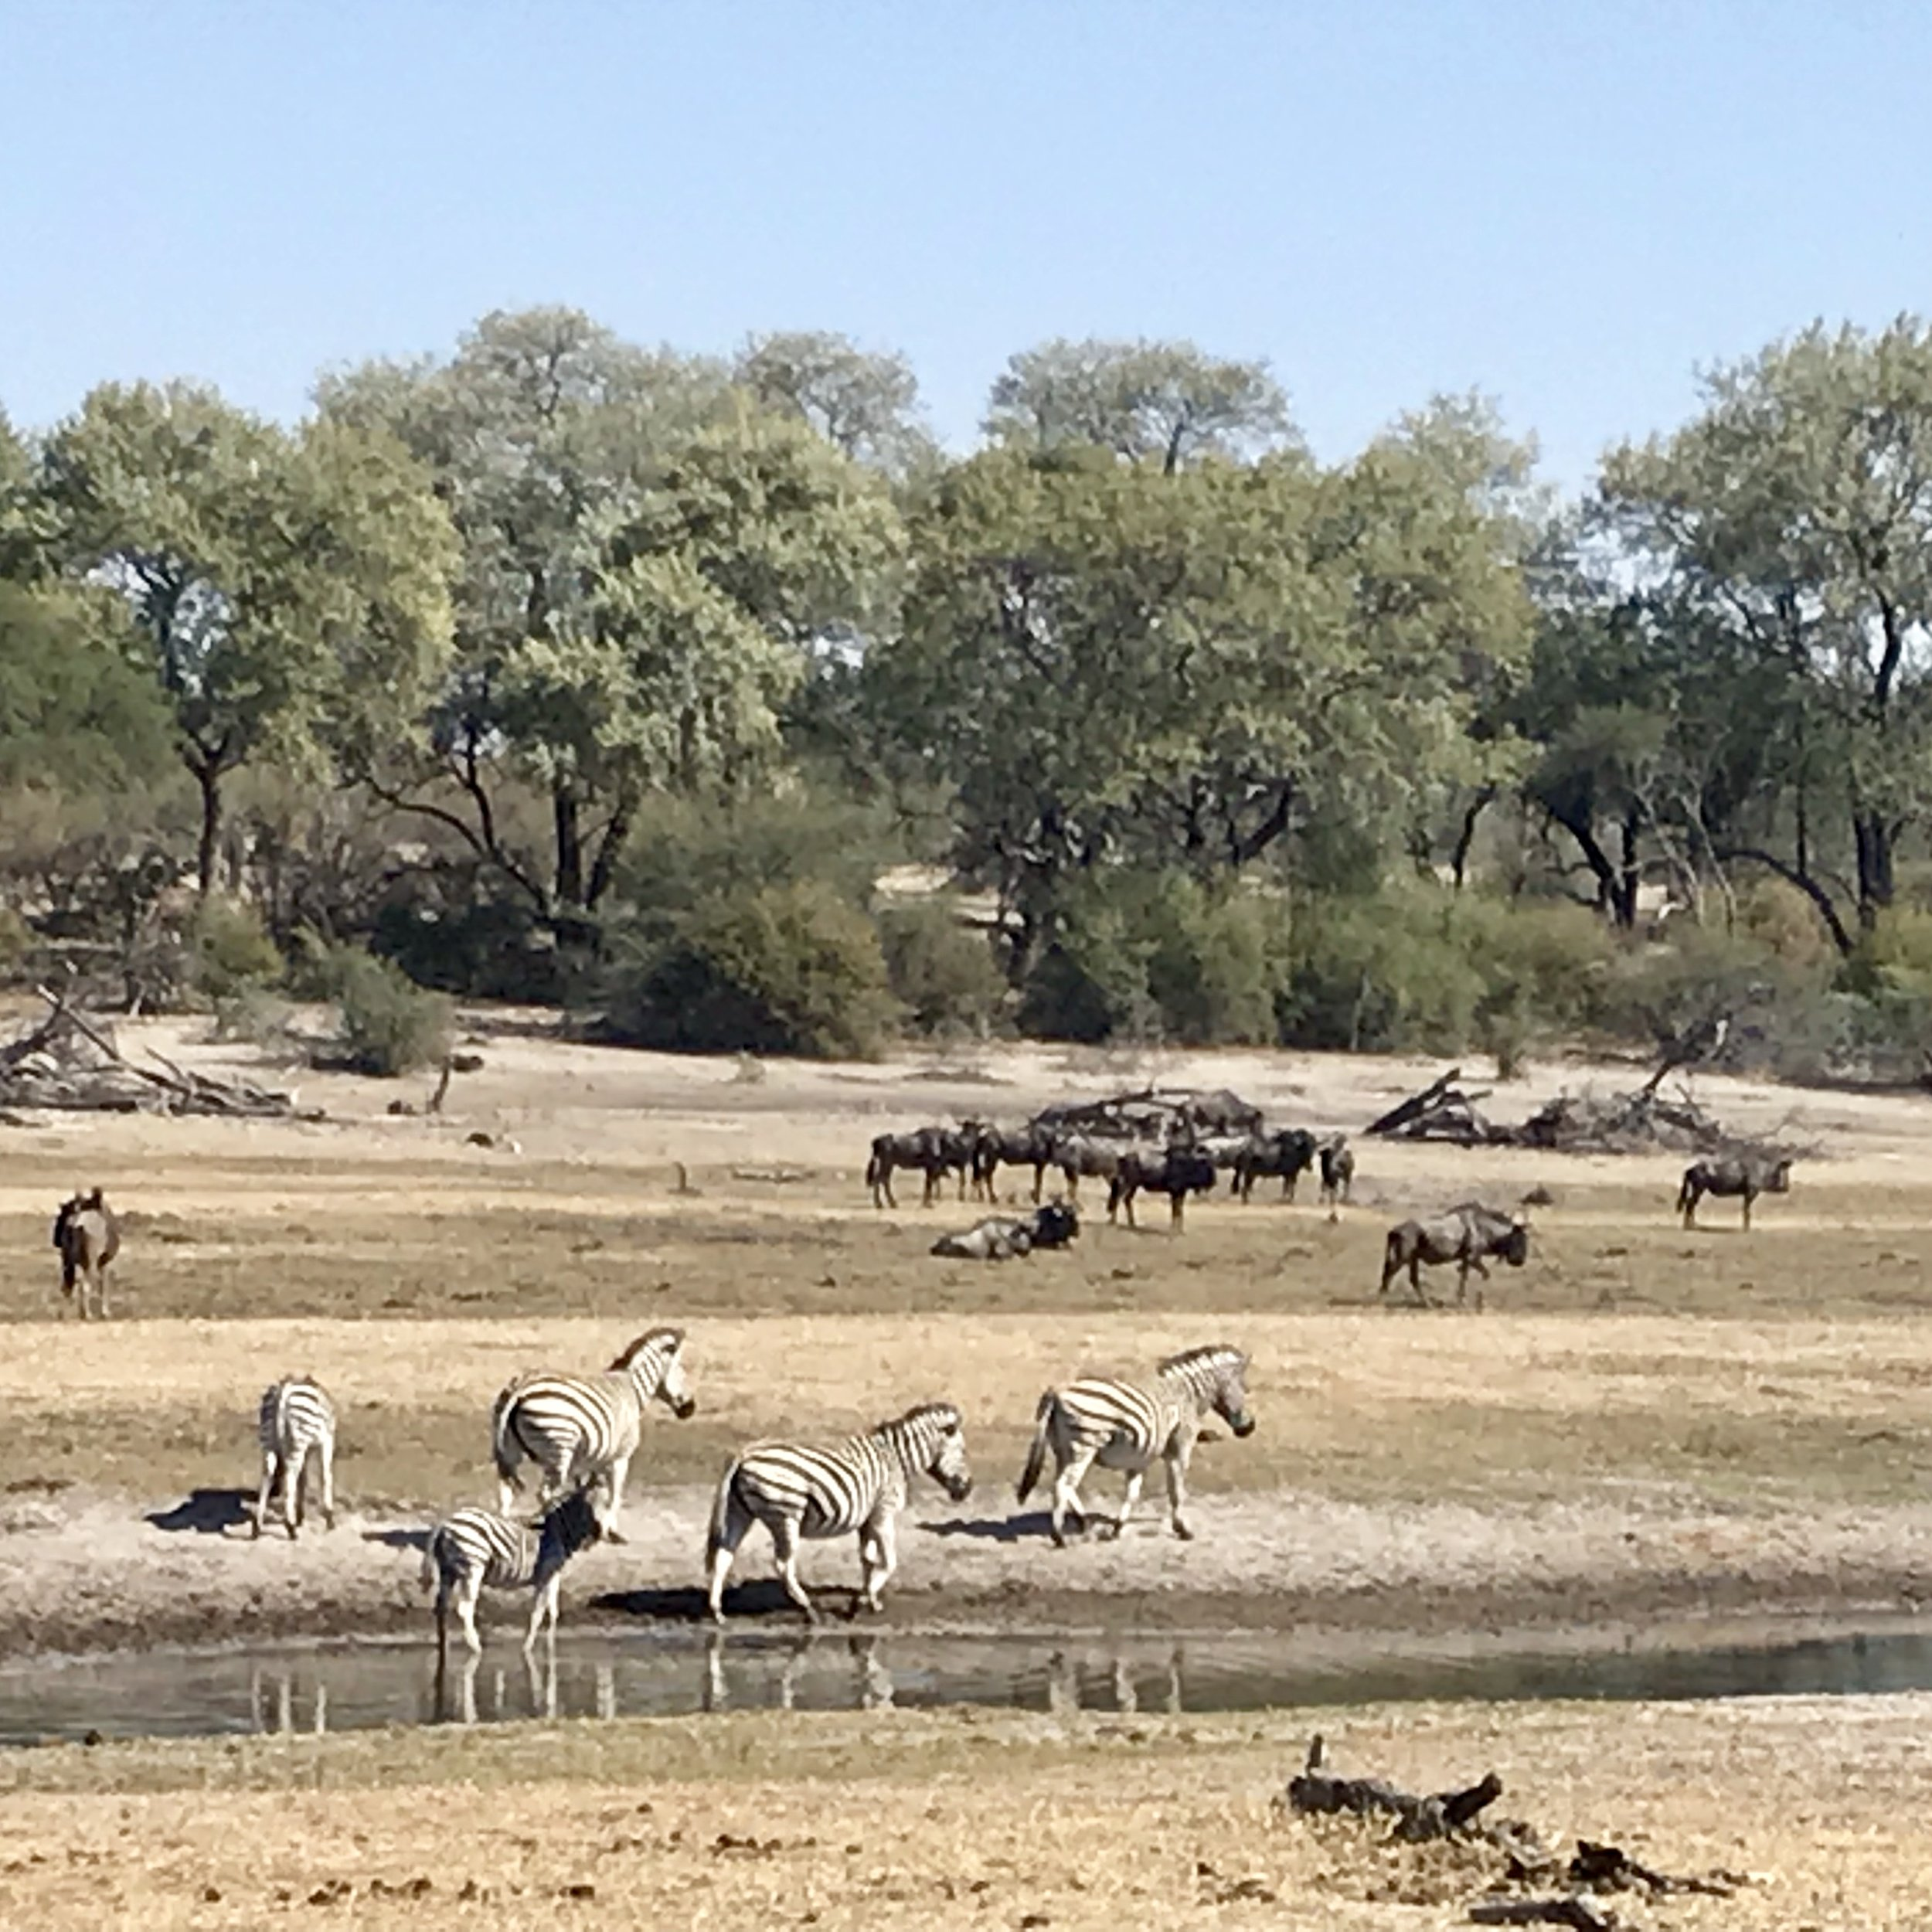 Zebras and wildebeest - they often travel together.